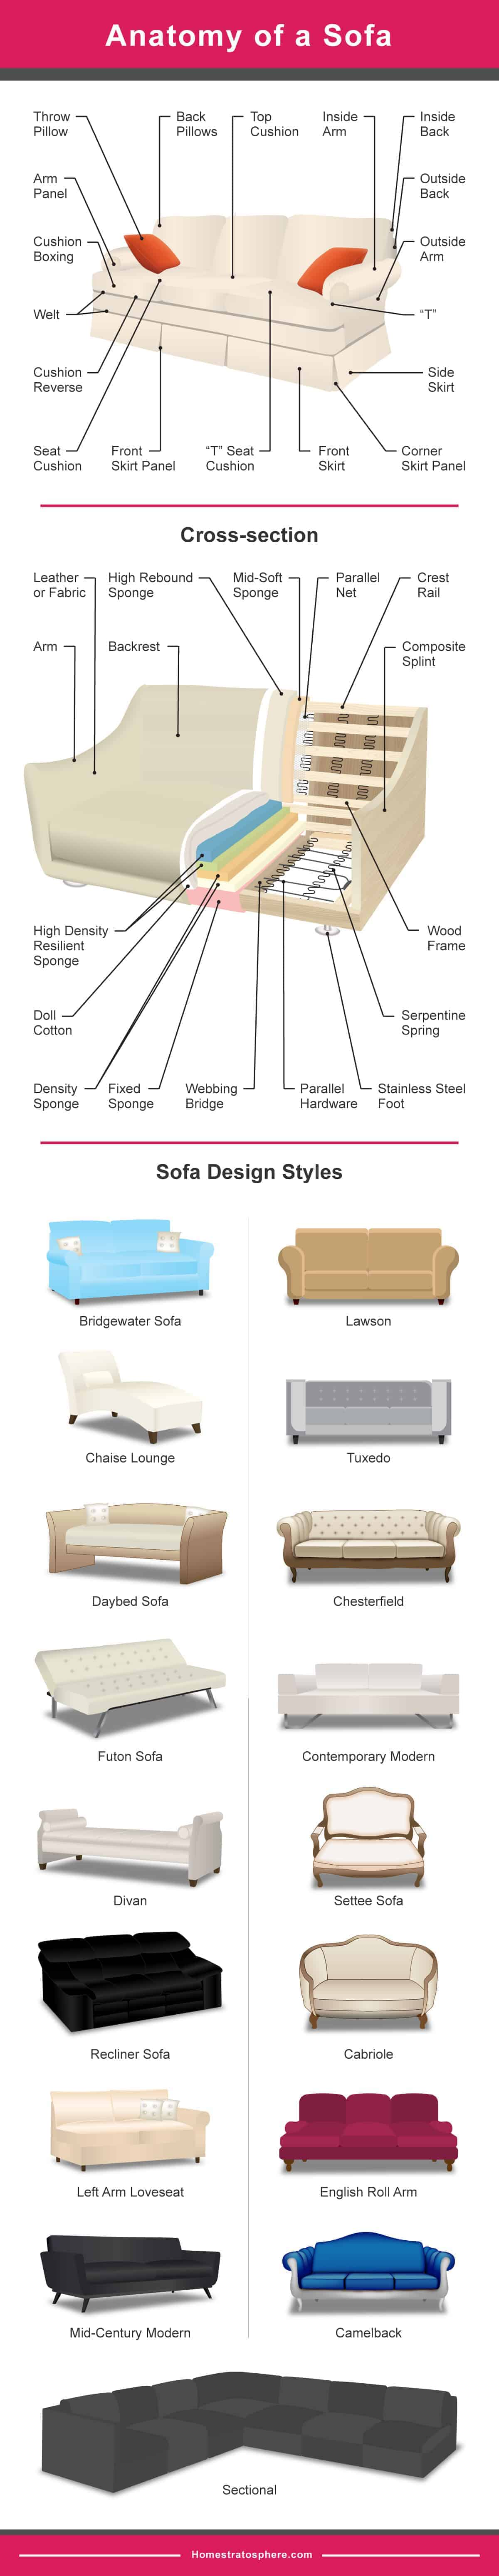 different types of sofas durham one piece sofa slipcover 20 couches explained with pictures diagram setting out the and anatomy a